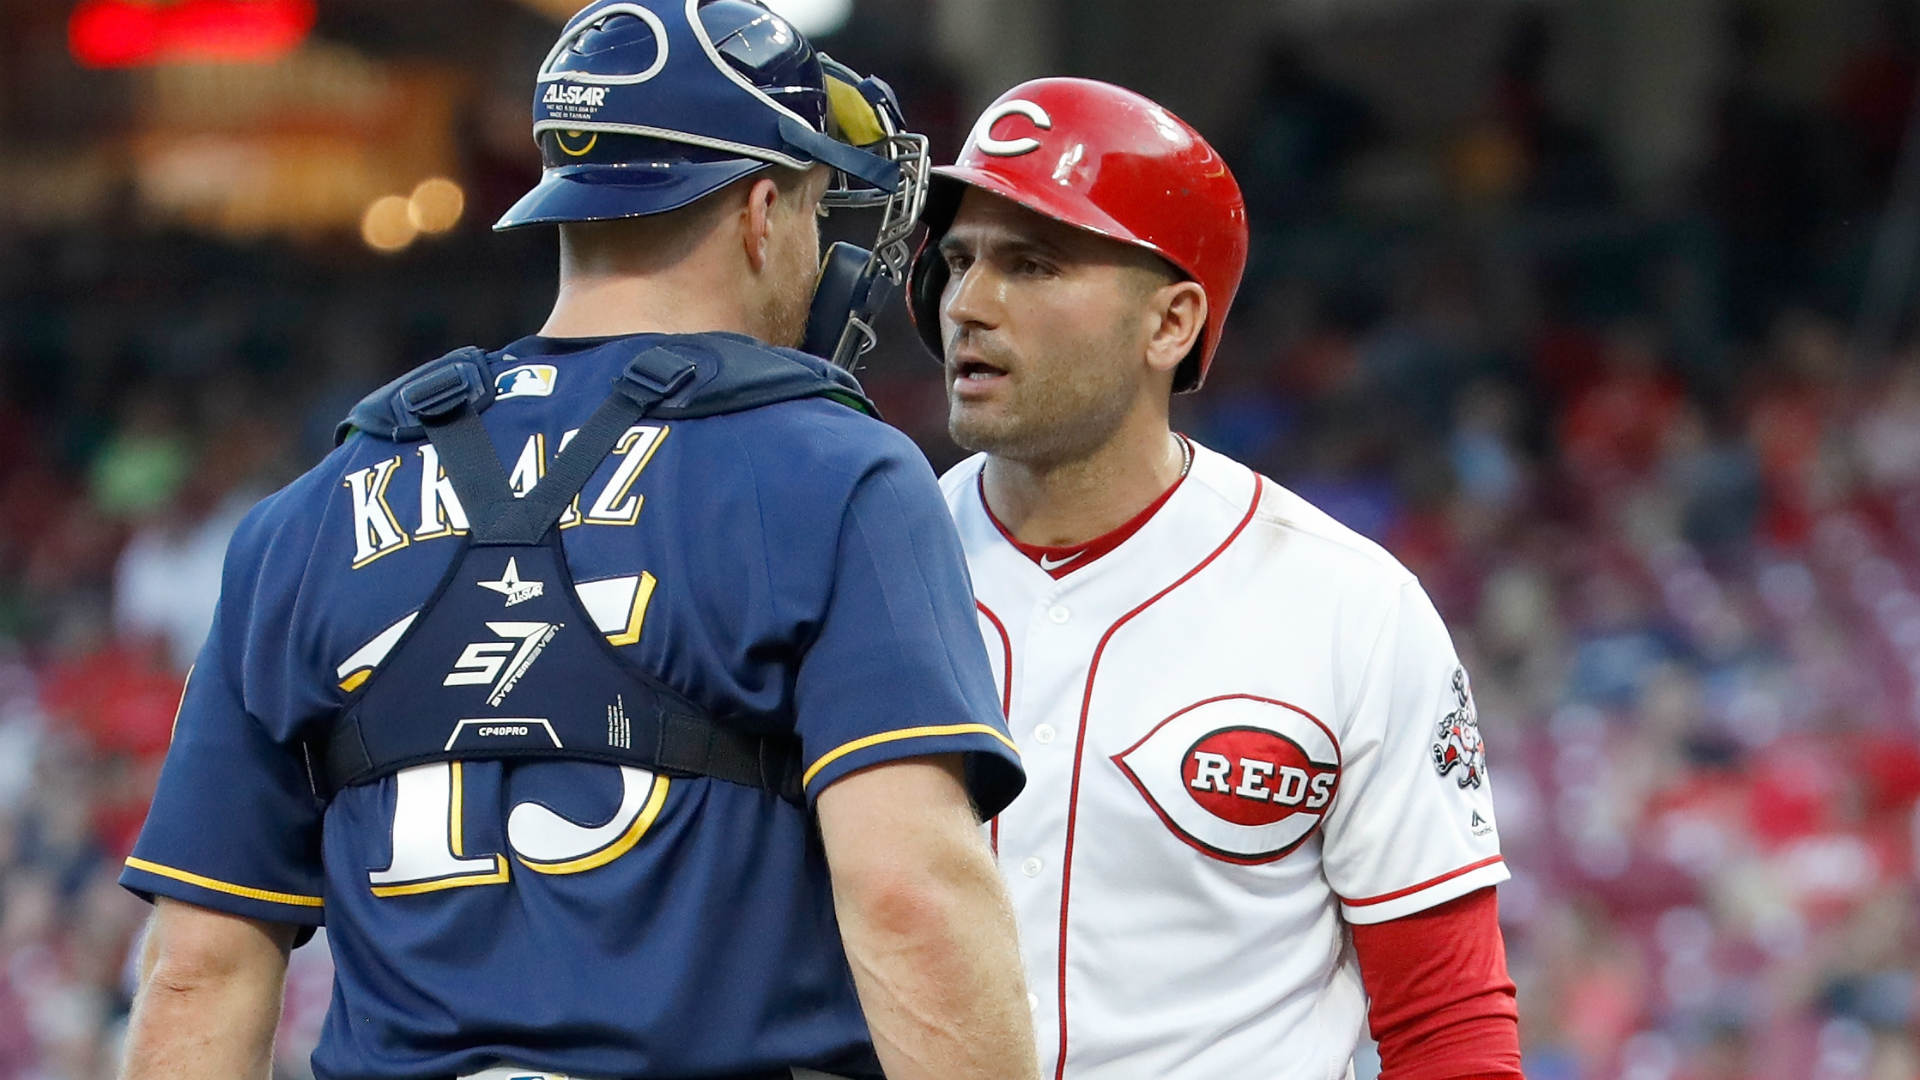 Reds-Brewers scrum just a 'misunderstanding,' says Joey ...